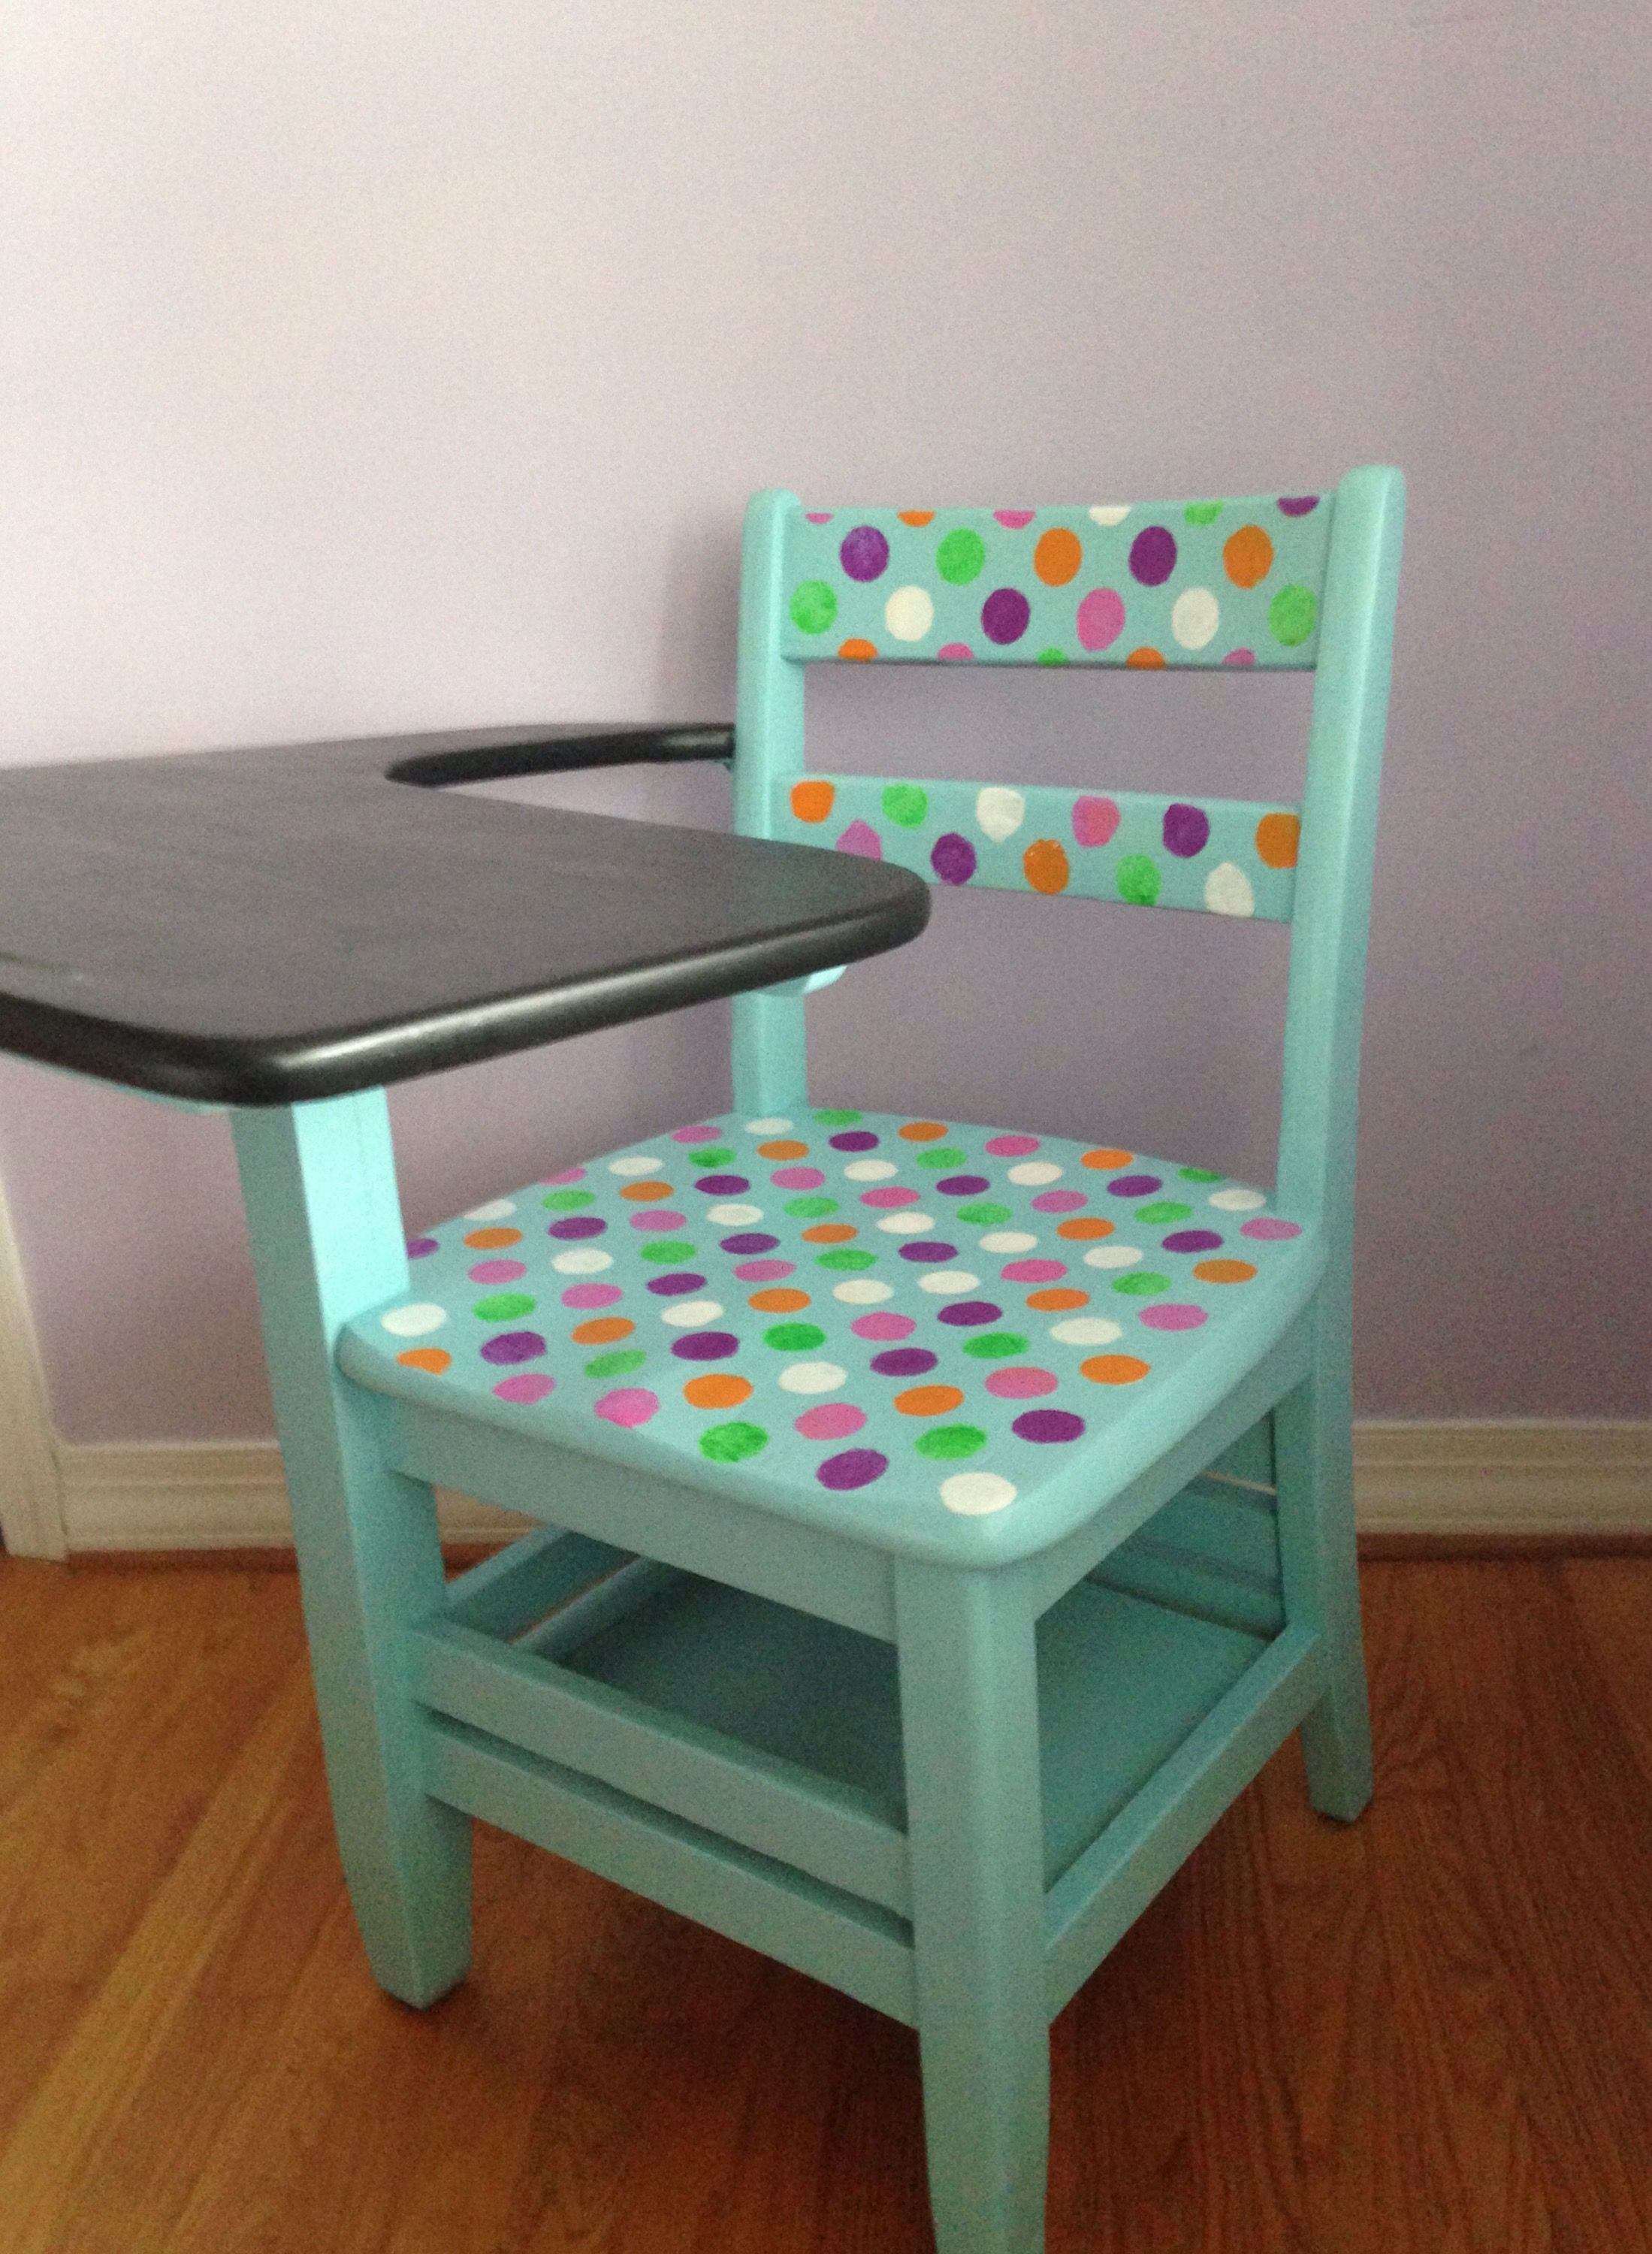 Old School Desk Refresh, Painted With Colorful Polka Dots And